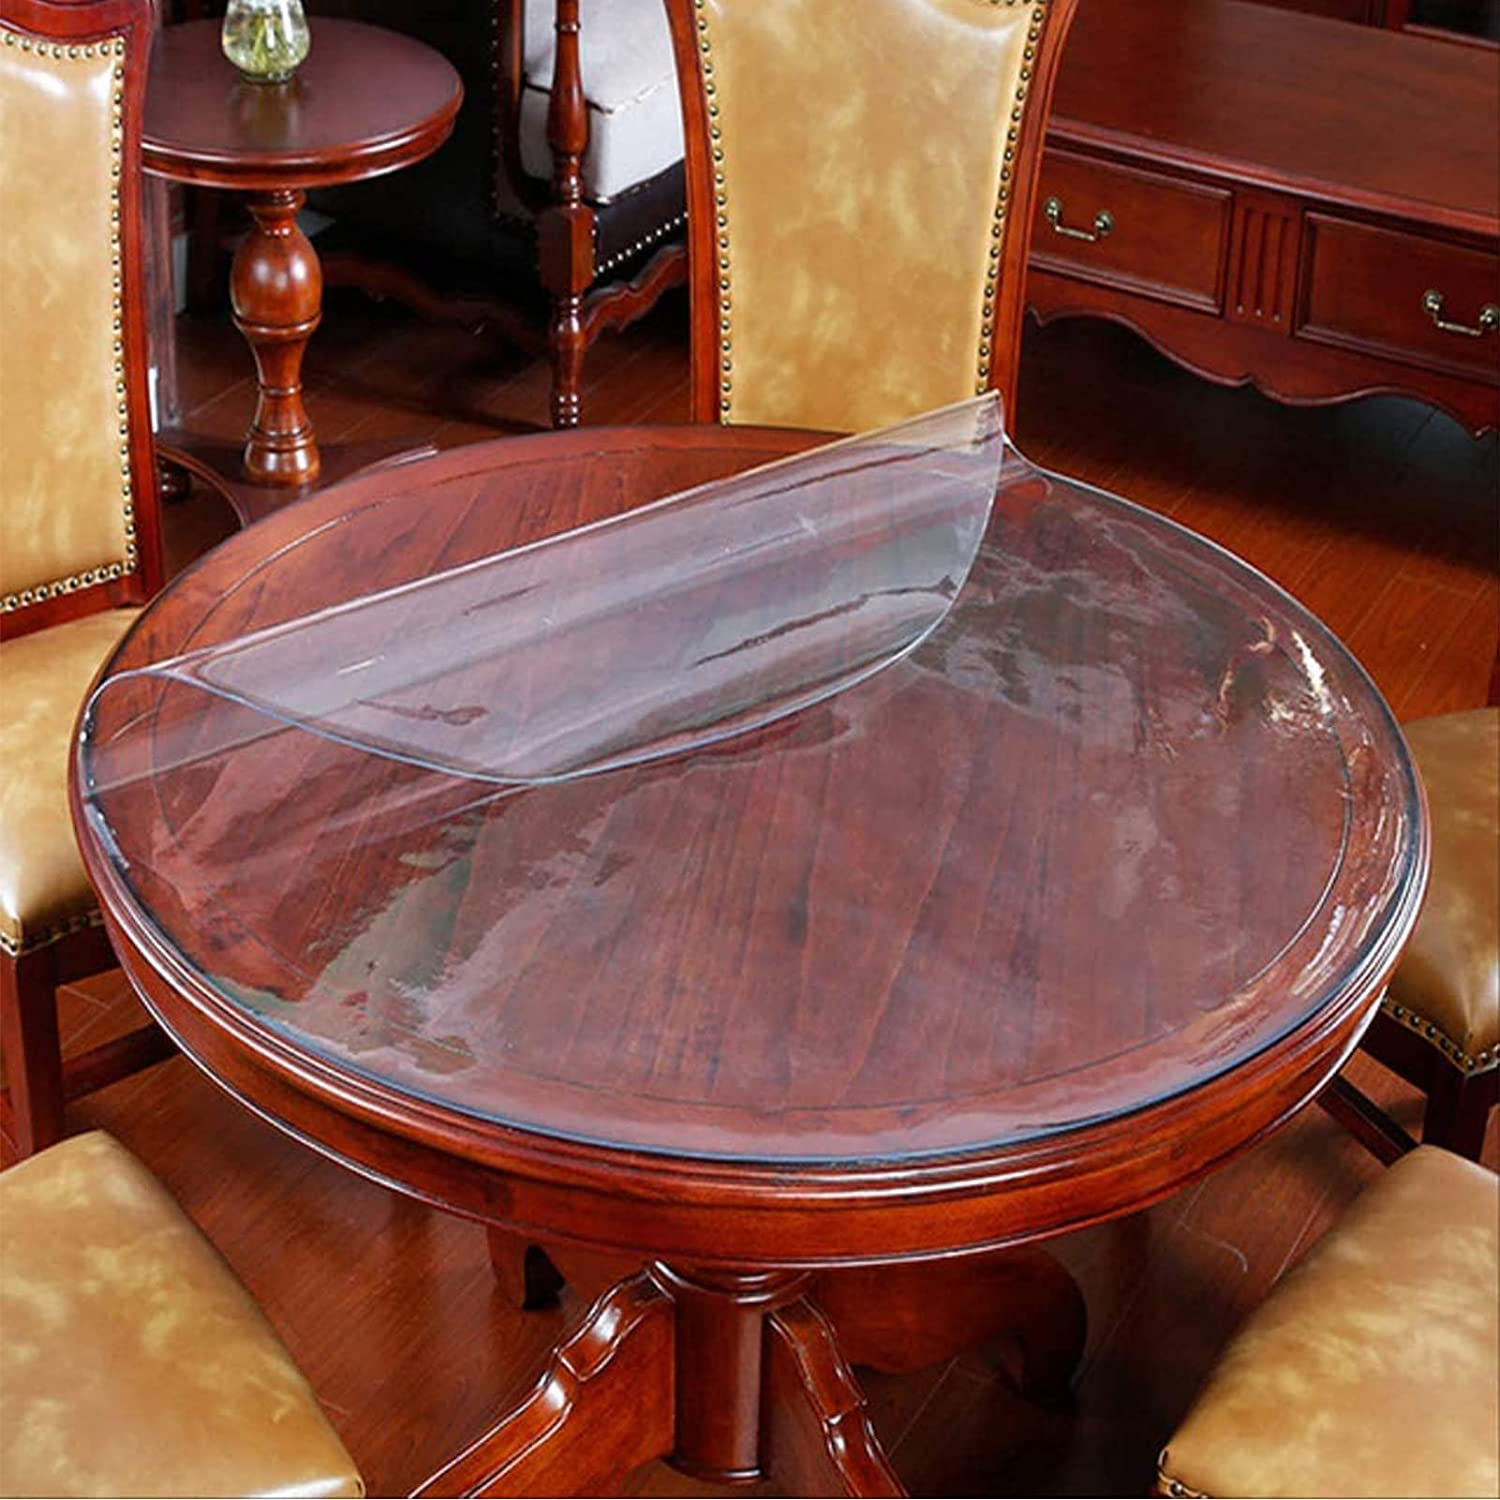 GXGX Clear Plastic Tablecloth Covers Pad Round Challenge Popularity the lowest price Transparent Table